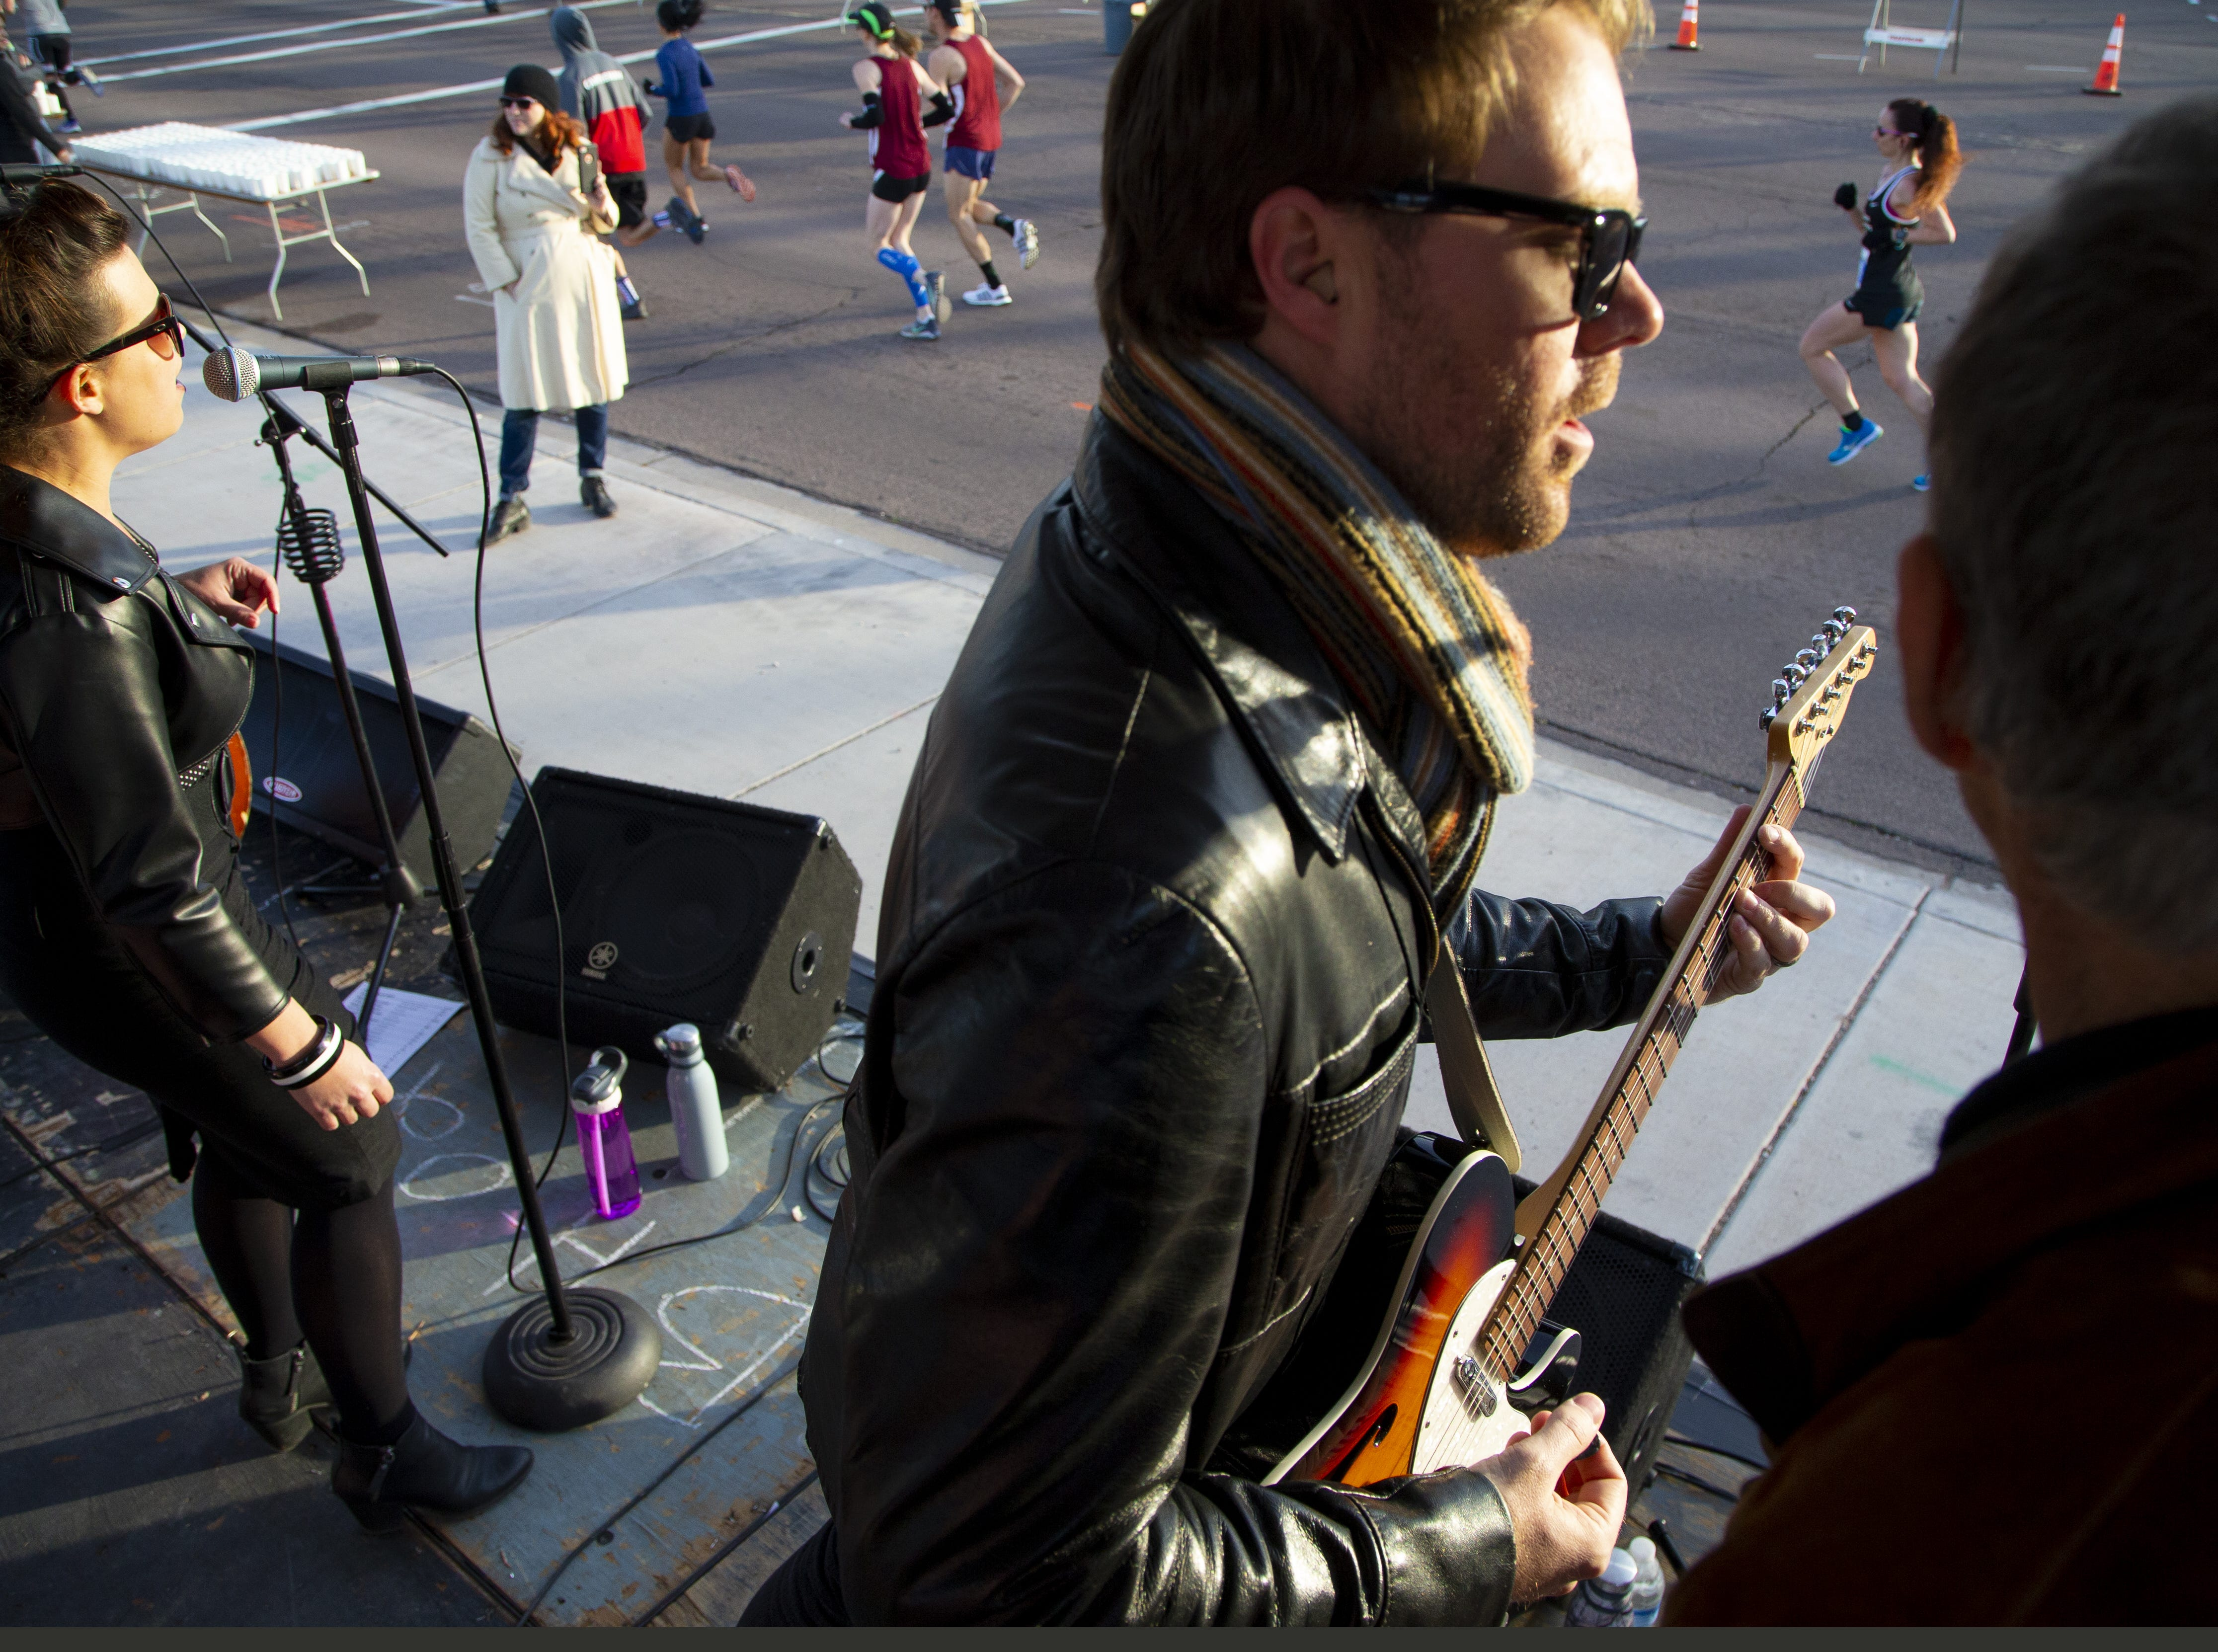 Whiskey Kiss lead singer Niki White, and guitarist Nick White, right, perform during Humana Rock 'n' Roll half marathon in on Jan. 20, 2019.